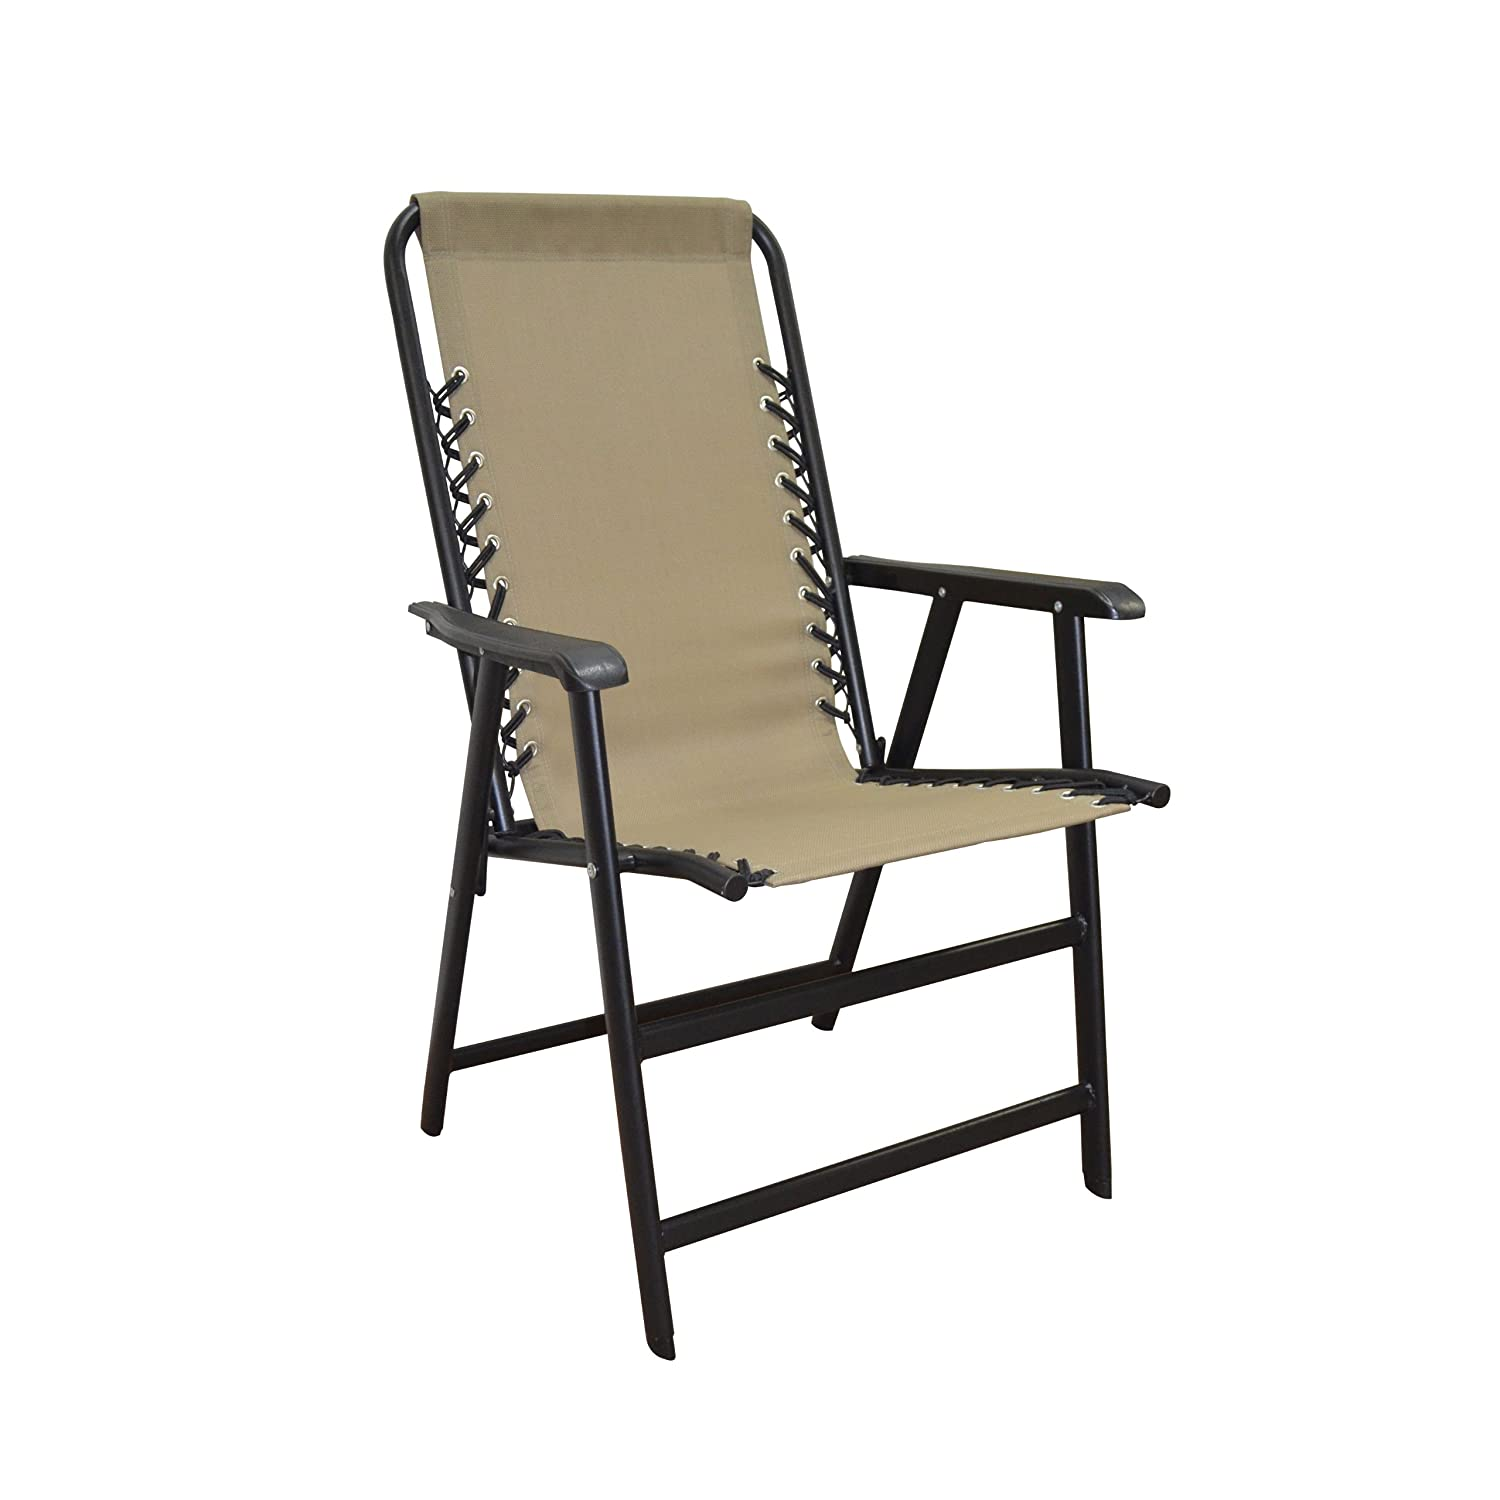 Patio Folding Chairs Heavy Duty Patio Chairs For Heavy People For Big And Heavy